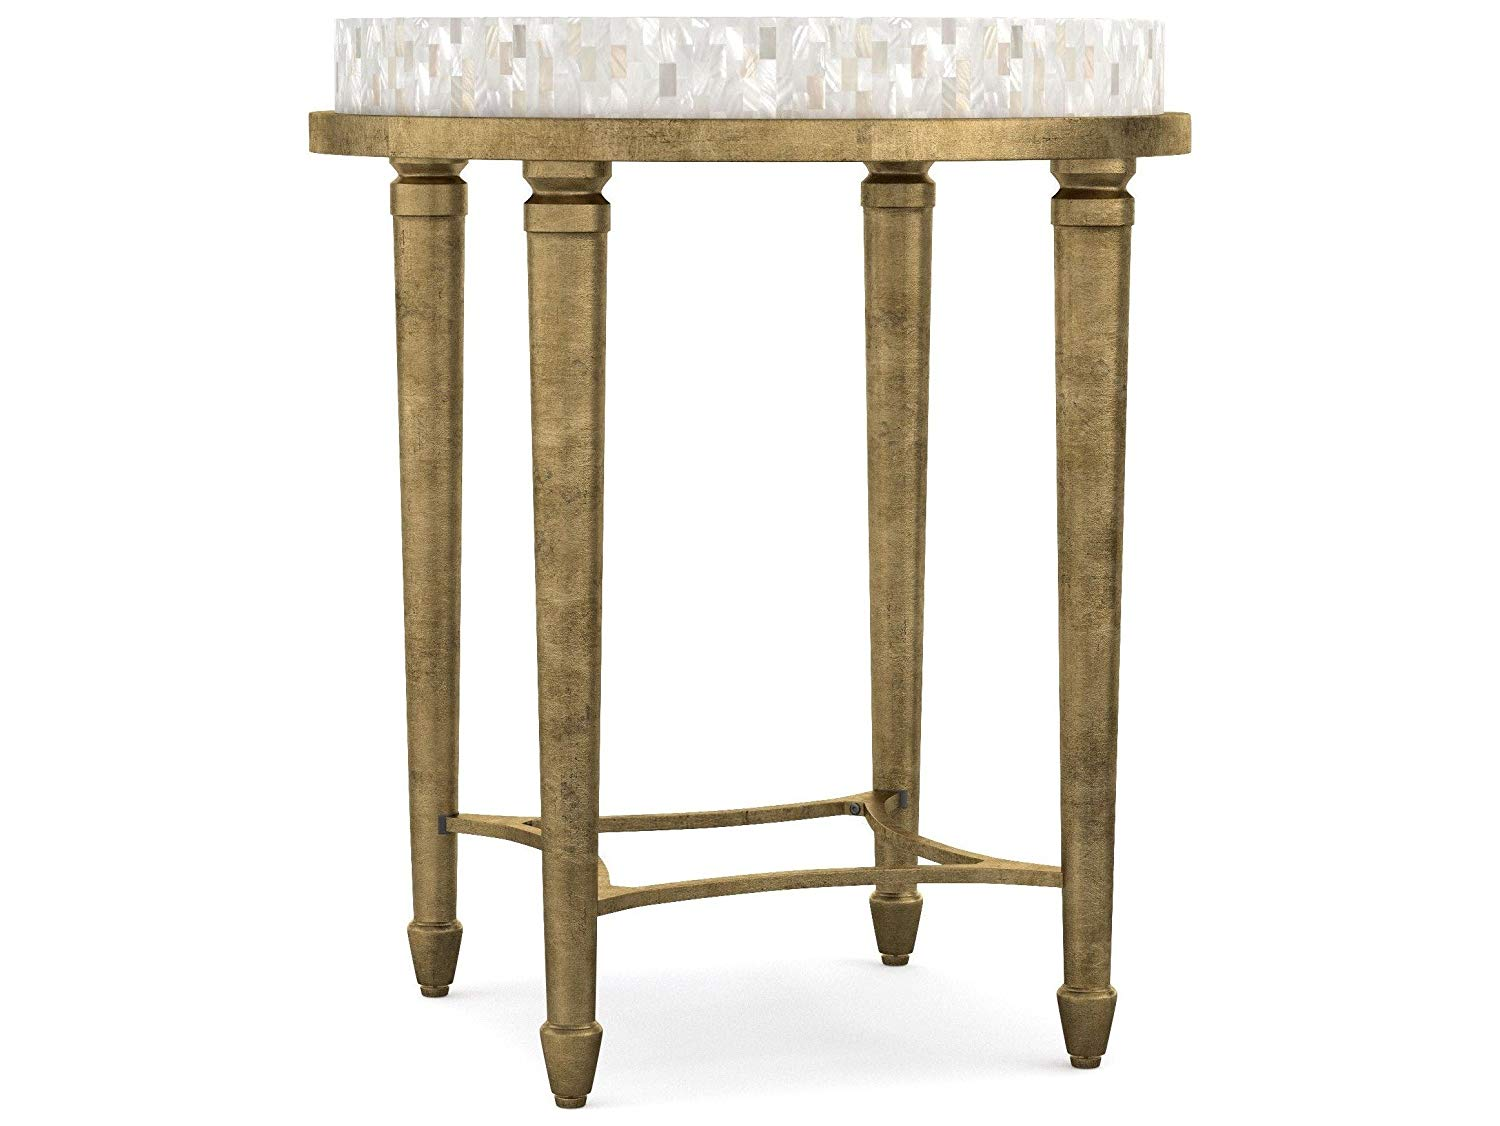 hooker furniture cynthia rowley aura round shell top tall pedestal accent table end kitchen dining clamp lamp antique side marble jcpenney window treatments laminate threshold bar